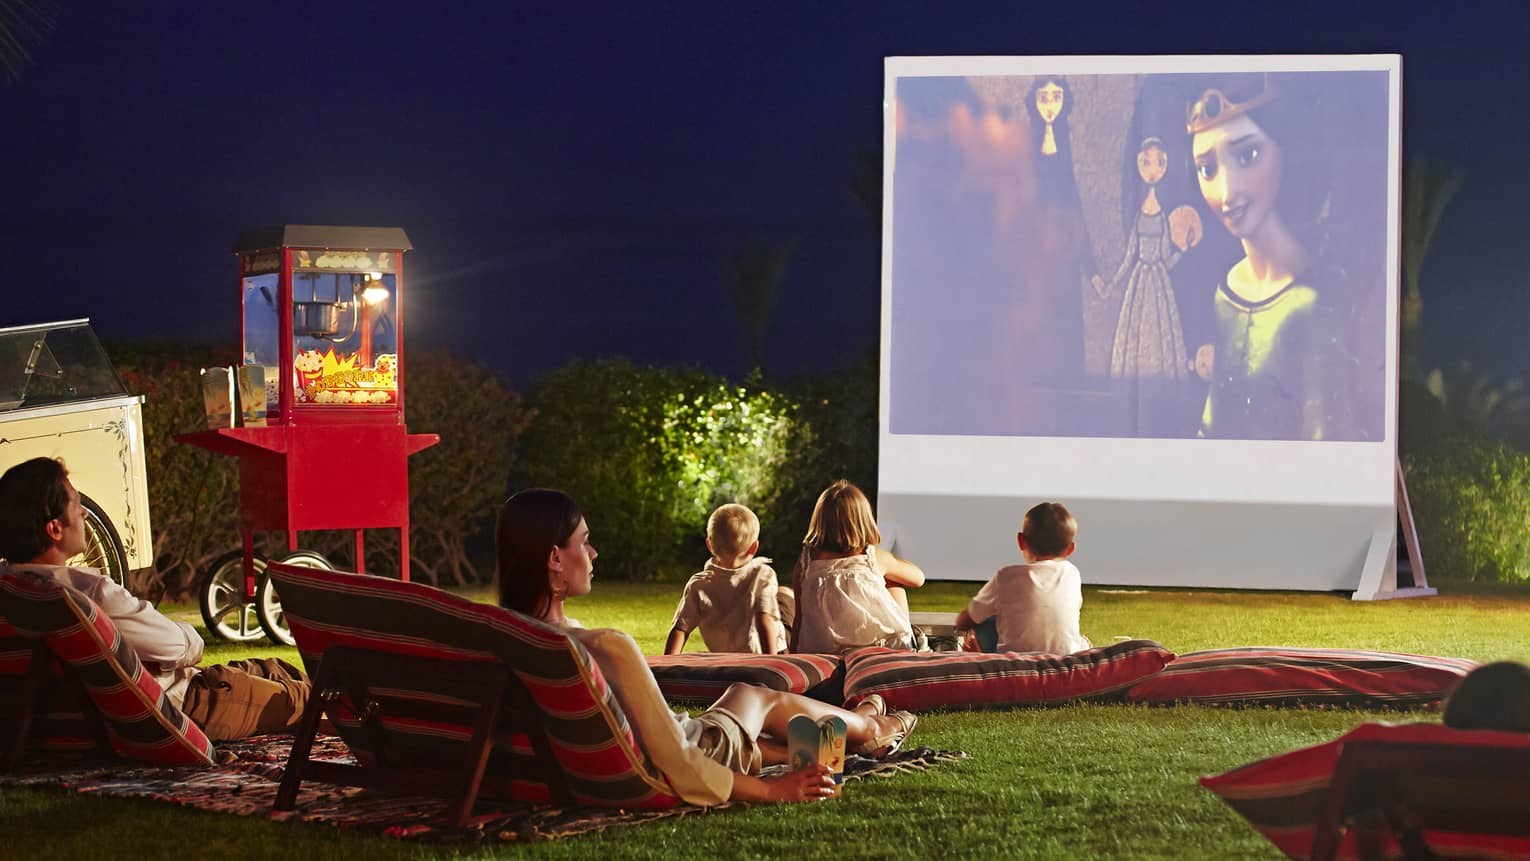 Children, parents lounge on pillows on grass in front of large outdoor movie screen at night